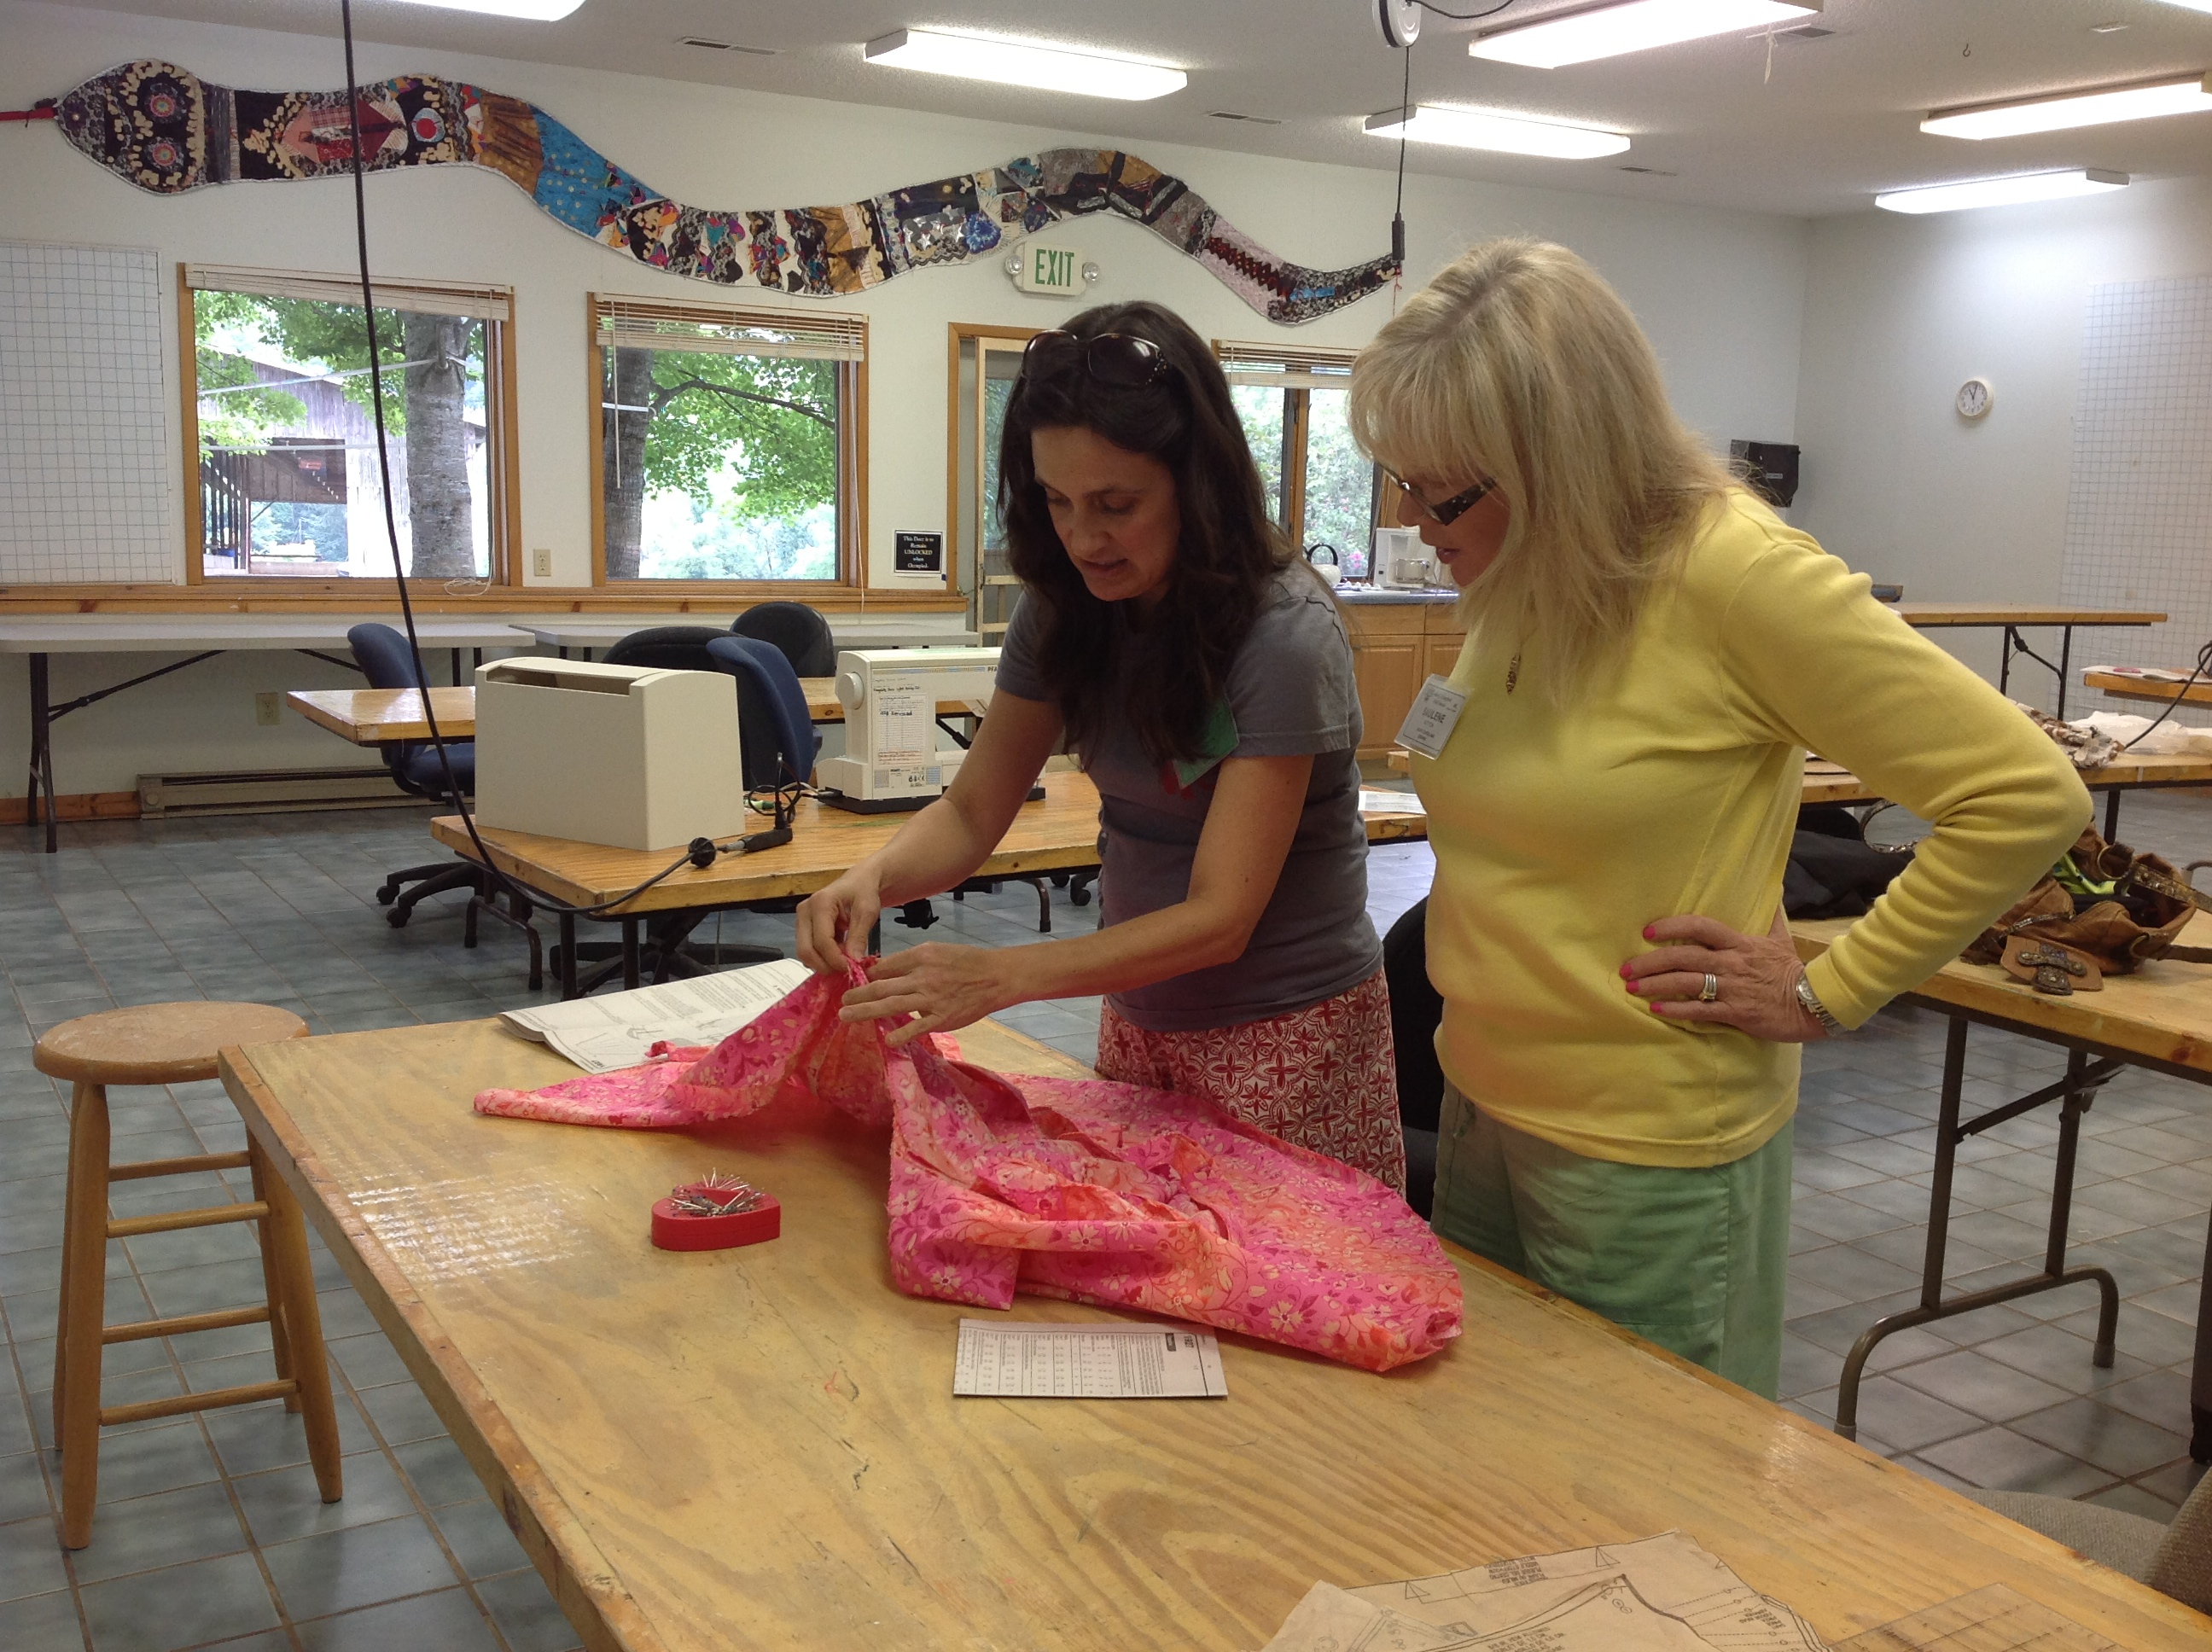 Building Your Sewing Skills at John C. Campbell Folk School